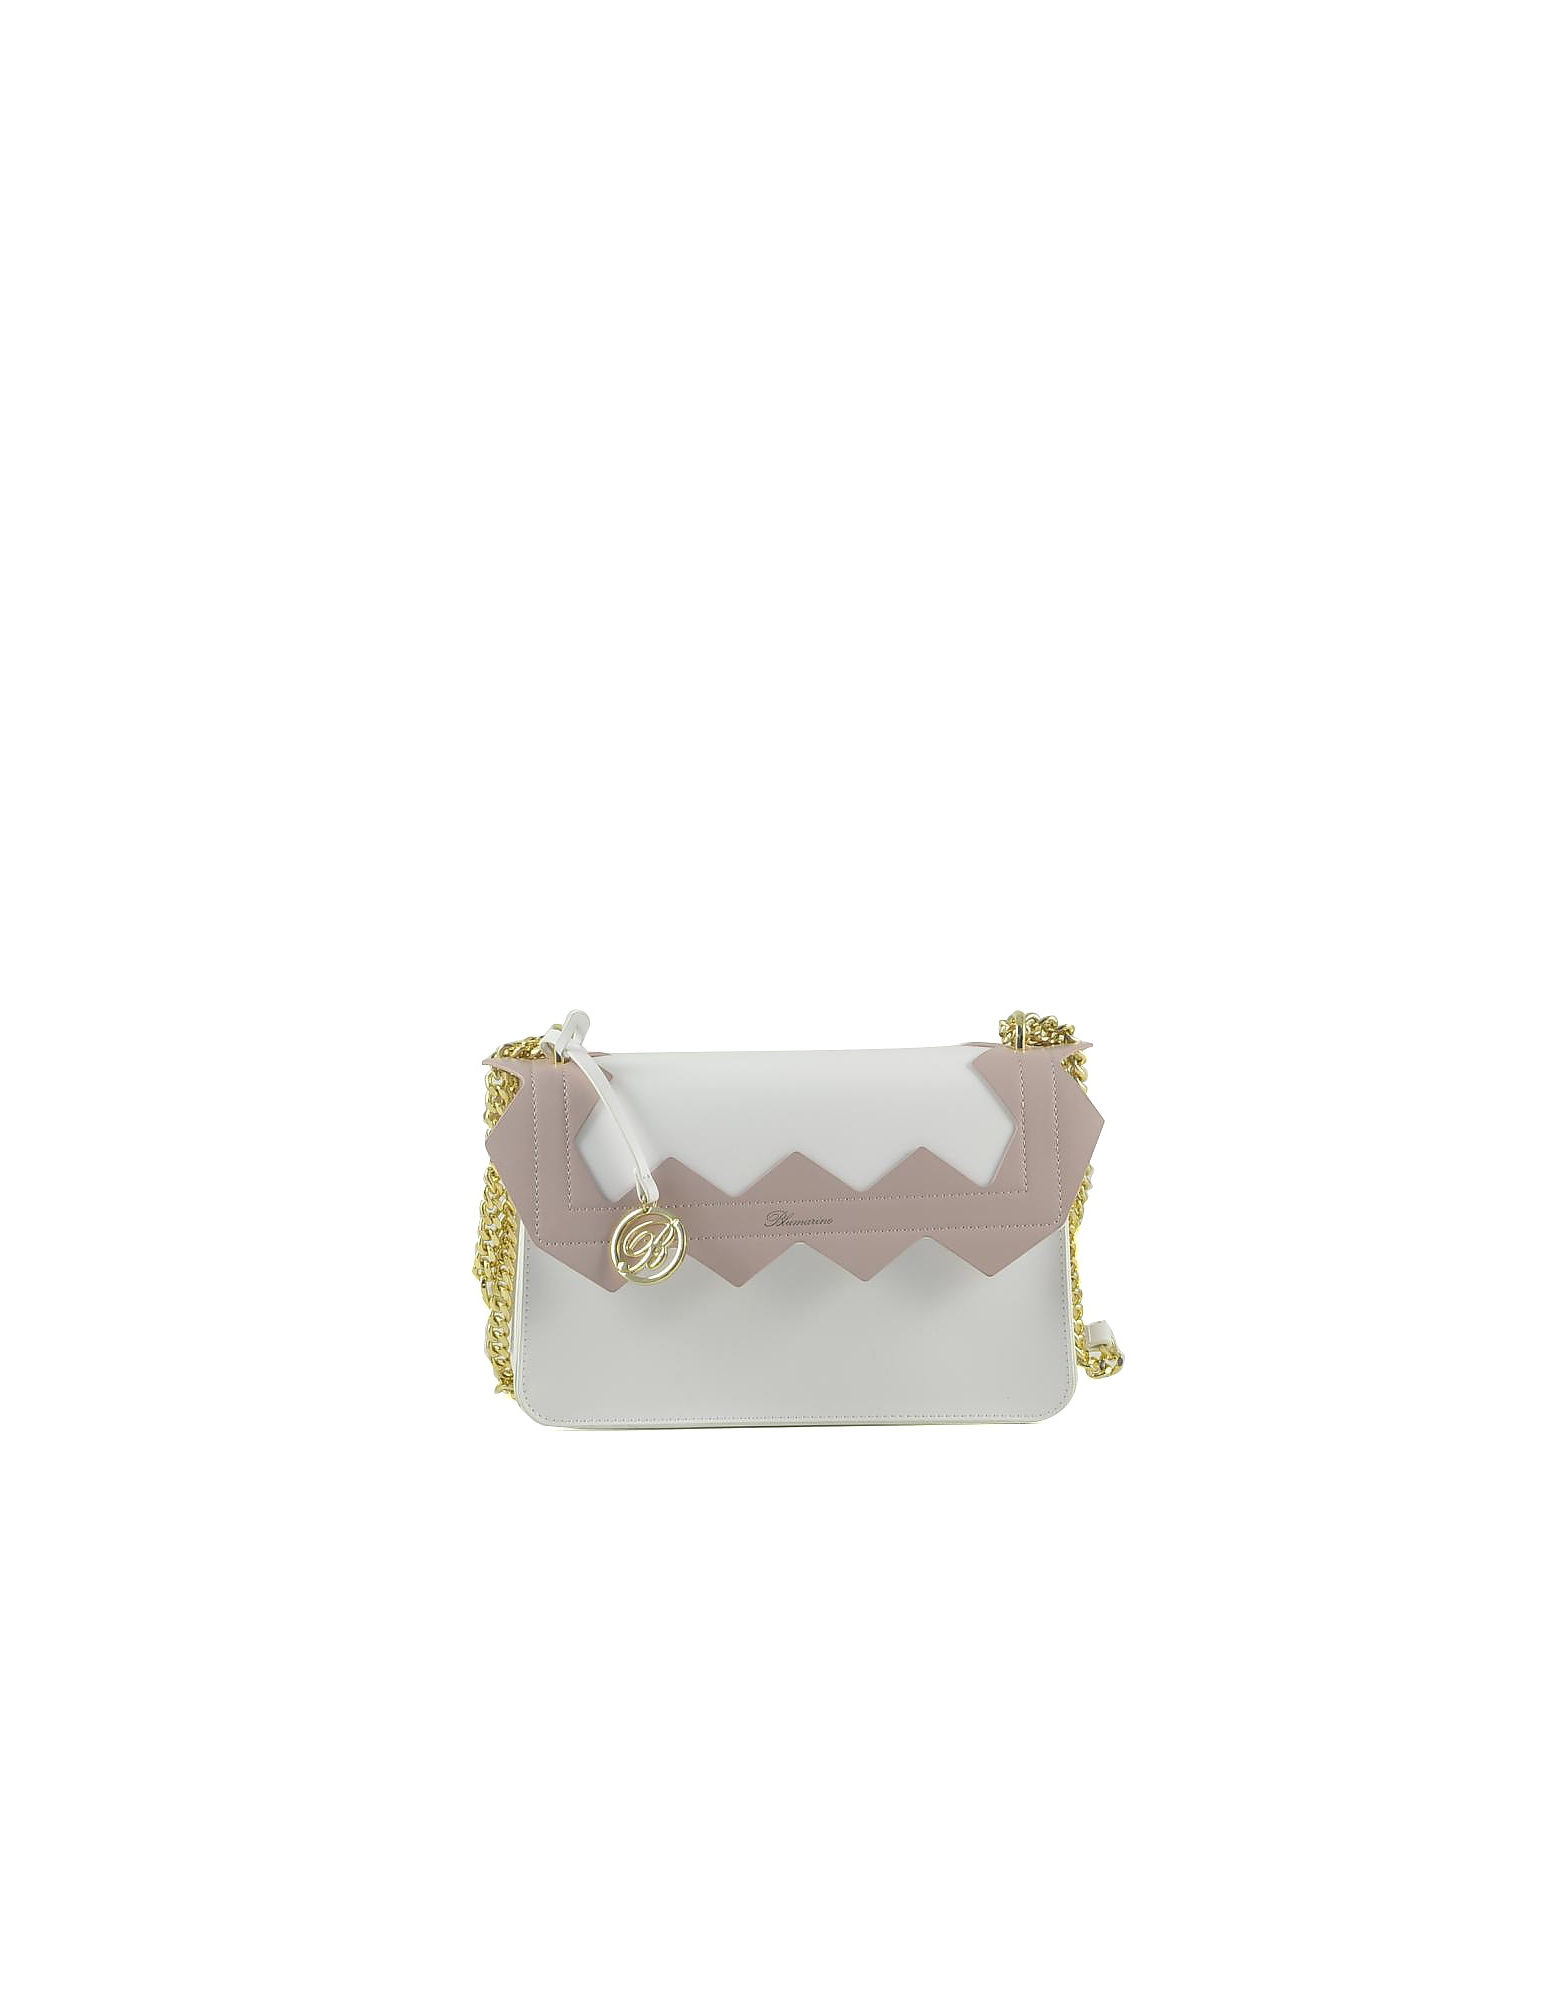 Blumarine Designer Handbags, Color Block Zig-Zag Shoulder Bag